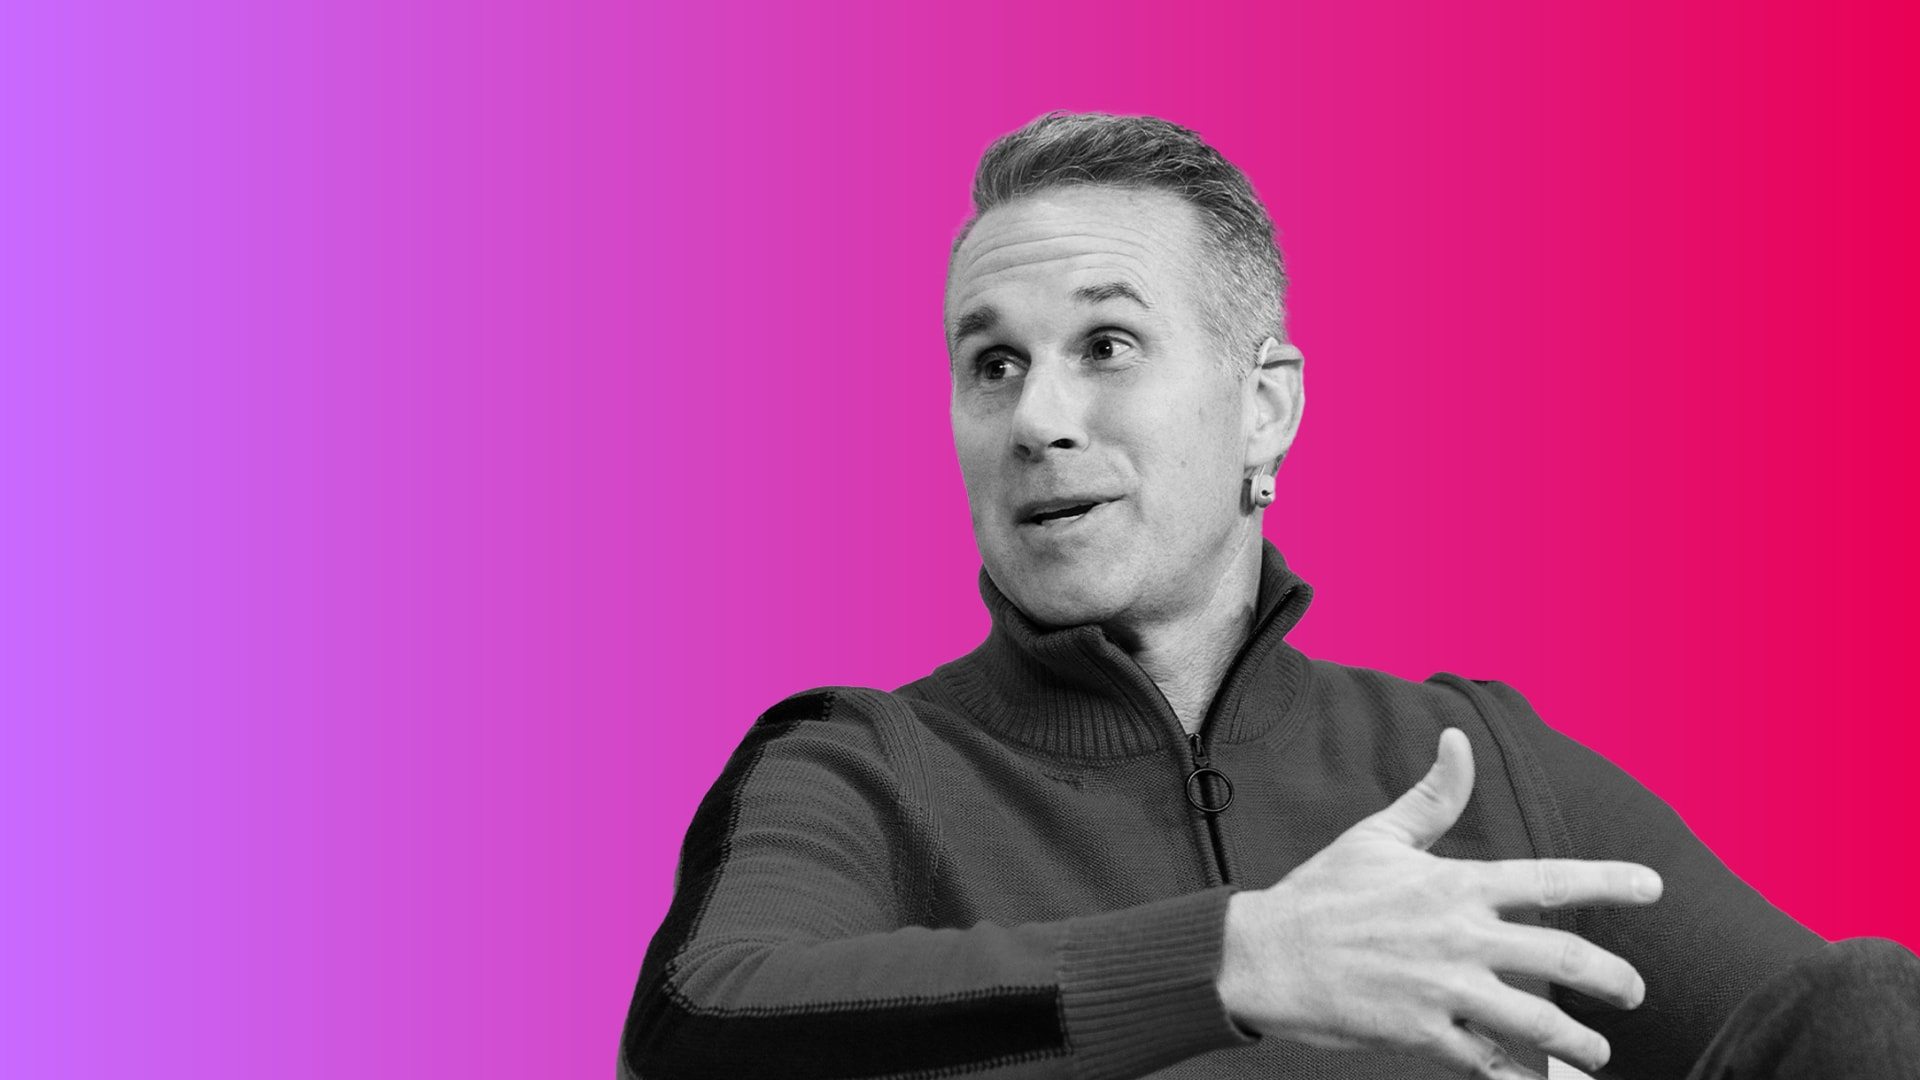 The Future of E-Commerce, According to StockX CEO Scott Cutler